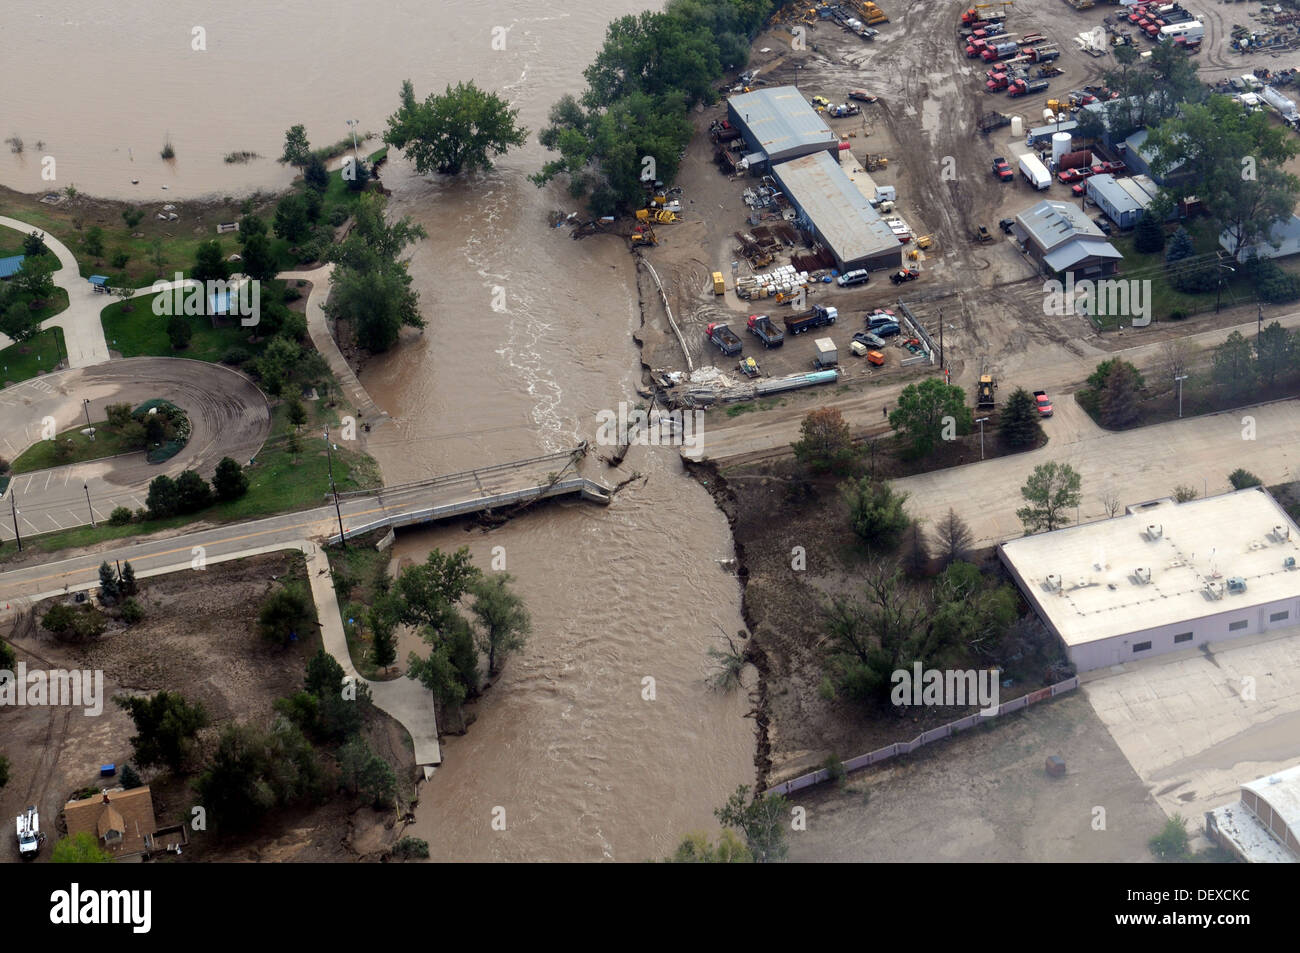 A view of state infrastructure destroyed by heavy rains, with some areas receiving as much as 18 inches in a 24-hour period in Boulder, Colo., Sept. 14, 2013. U.S. Soldiers with the 2nd General Support Aviation Battalion, 4th Combat Aviation Brigade, 4th - Stock Image